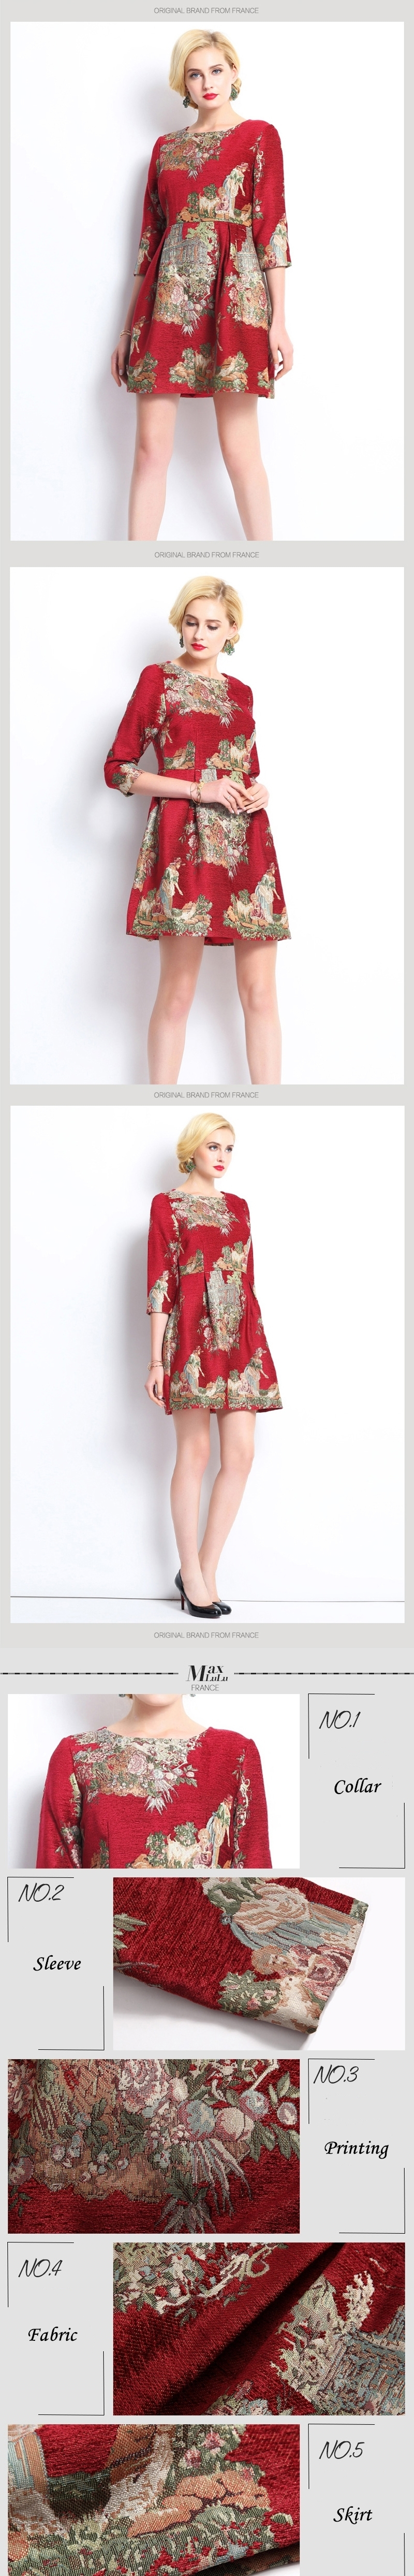 Max LuLu Autumn 2017 Luxury Brand Red Floral Women's Vintage Dresses Slash Neck Party Ladies Knitted Dress Brand Clothing XXXL 4